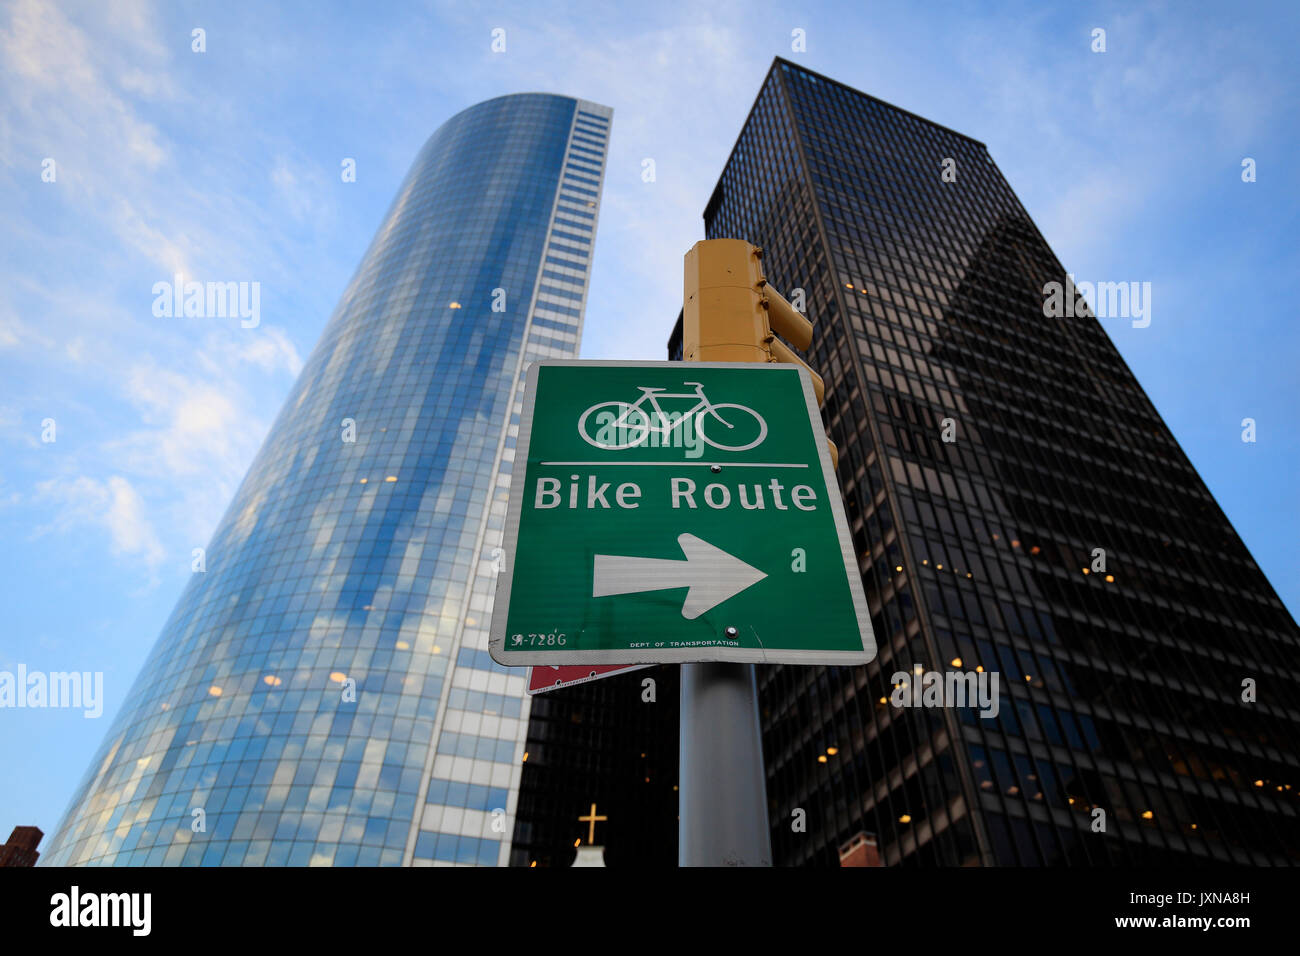 Bike route sign in Downtown Manhattan, New York, NY - Stock Image